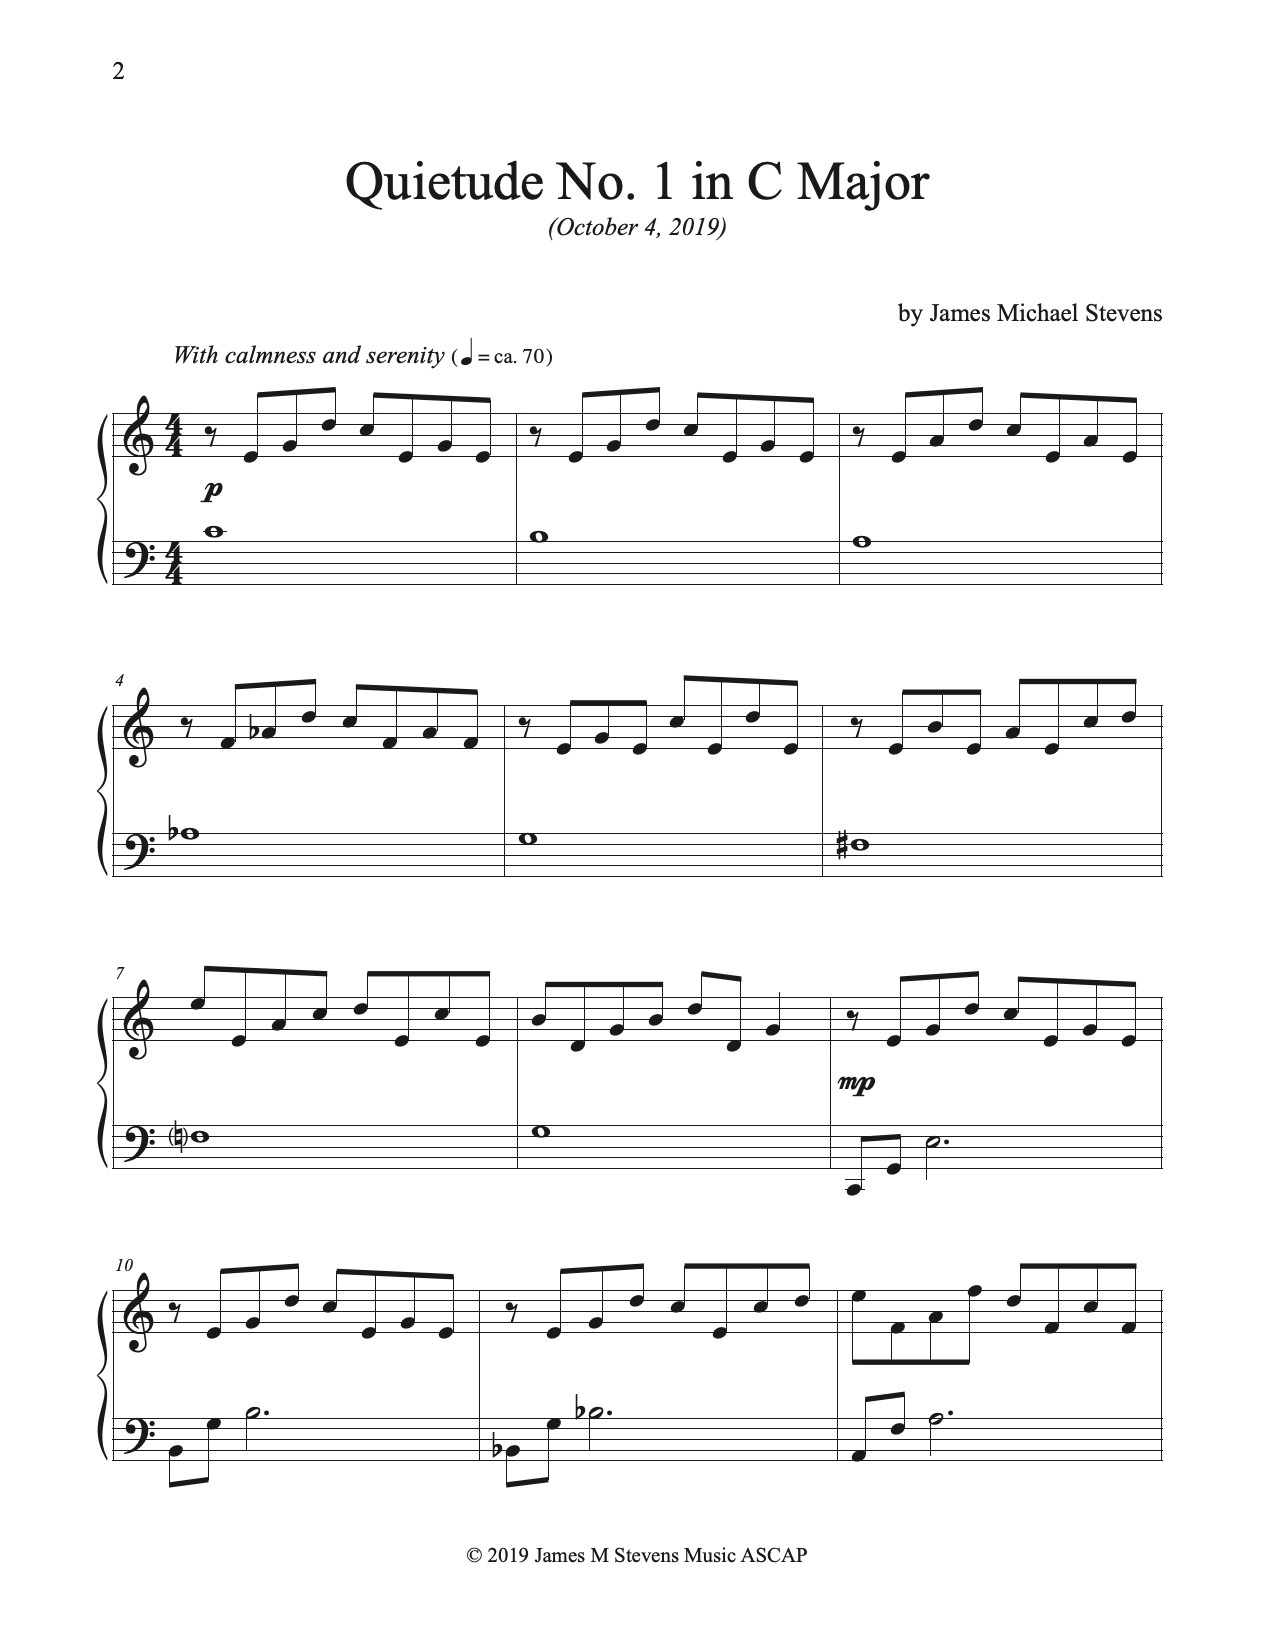 quietudes for piano - sheet music marketplace  sheet music marketplace